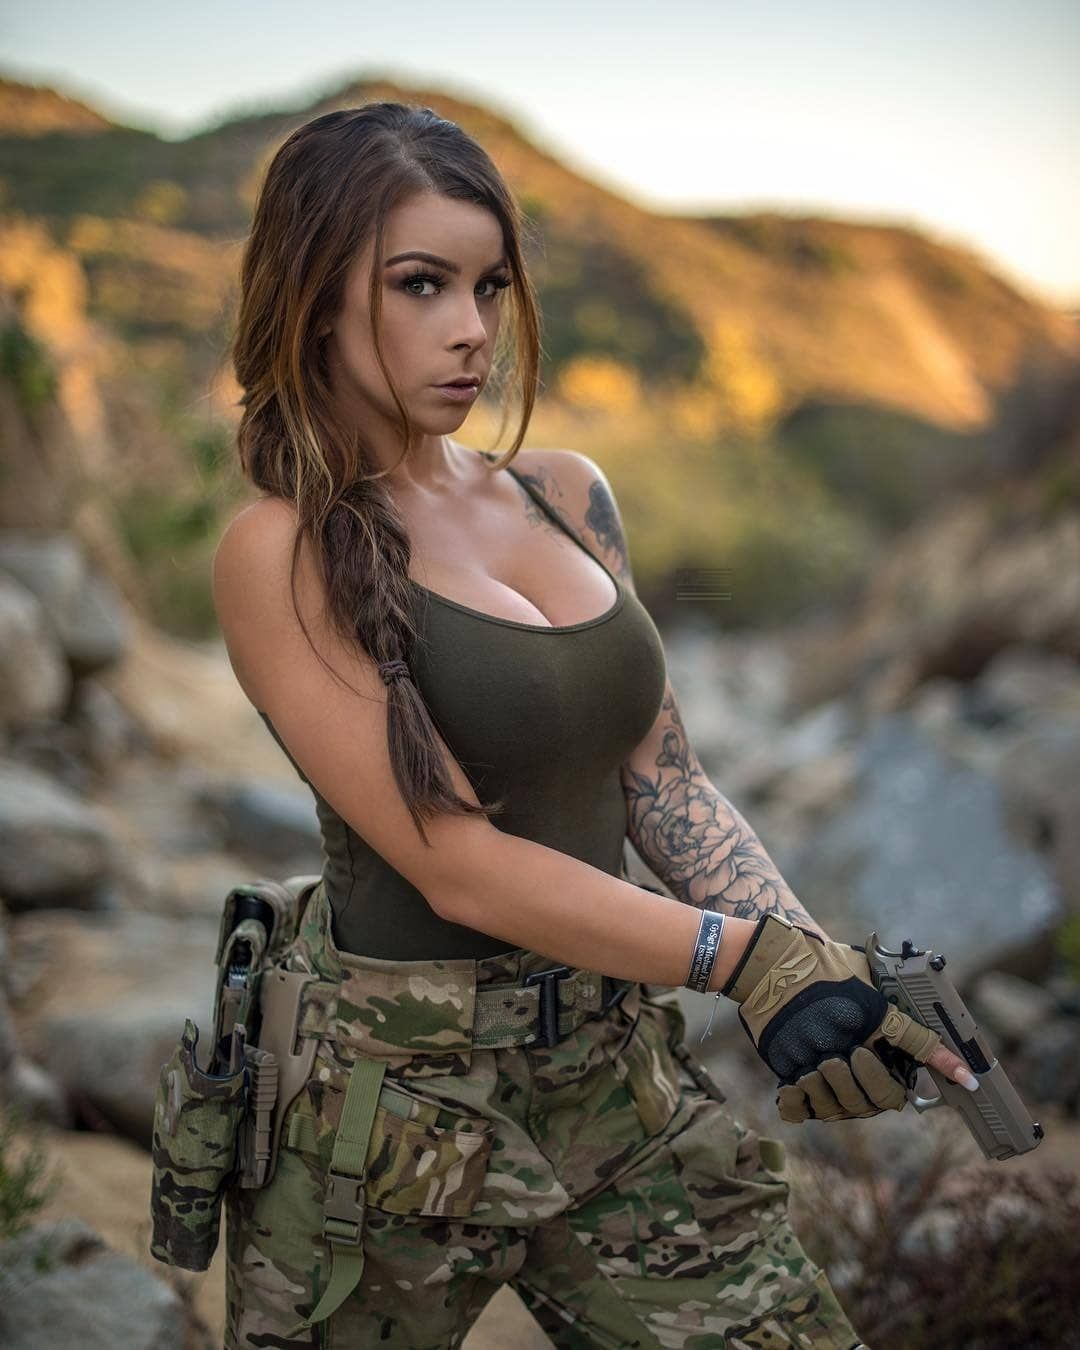 Pin by Pacielli on Girls in Uniform Hot | Military girl